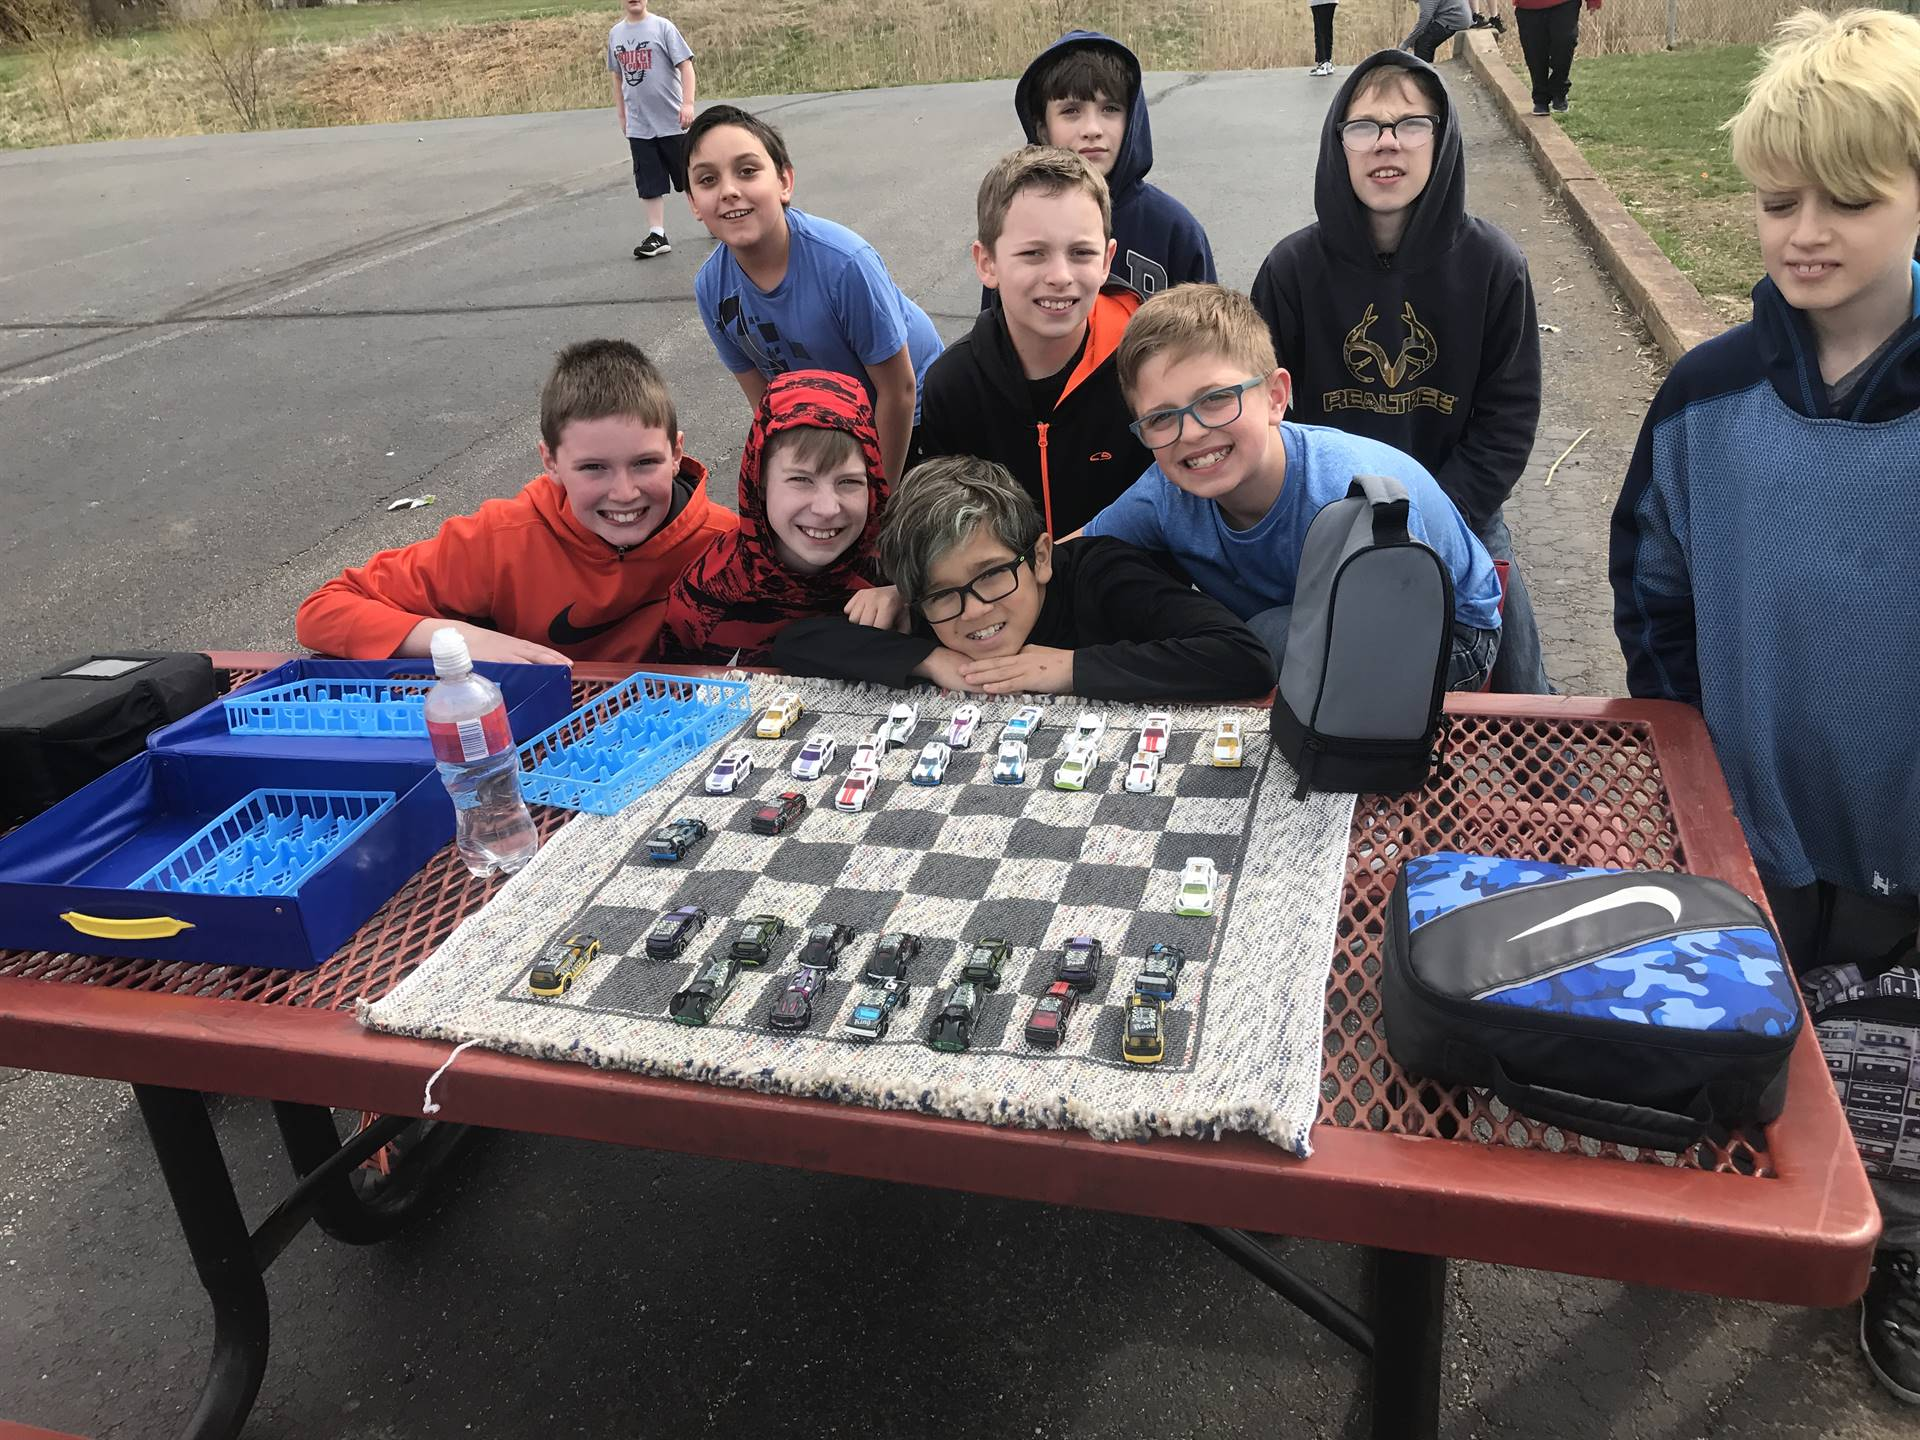 5th grade chess at recess with matchbox cars